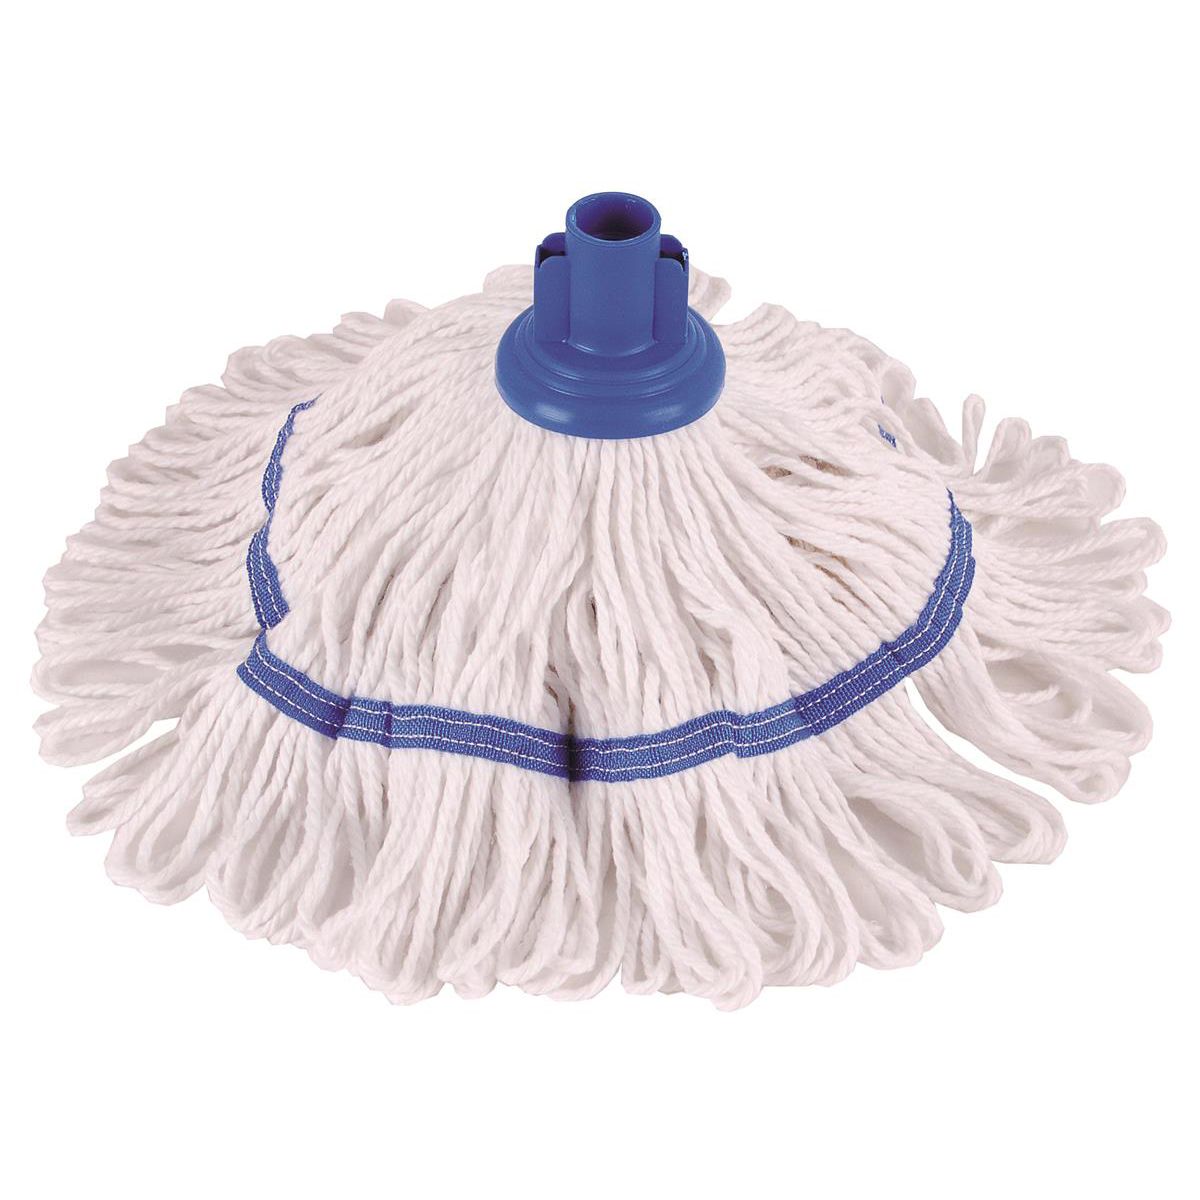 Mops & Buckets Robert Scott & Sons Hygiemix T1 Socket Cotton & Synthetic Colour-coded Mop 200g Blue Ref MHH200B